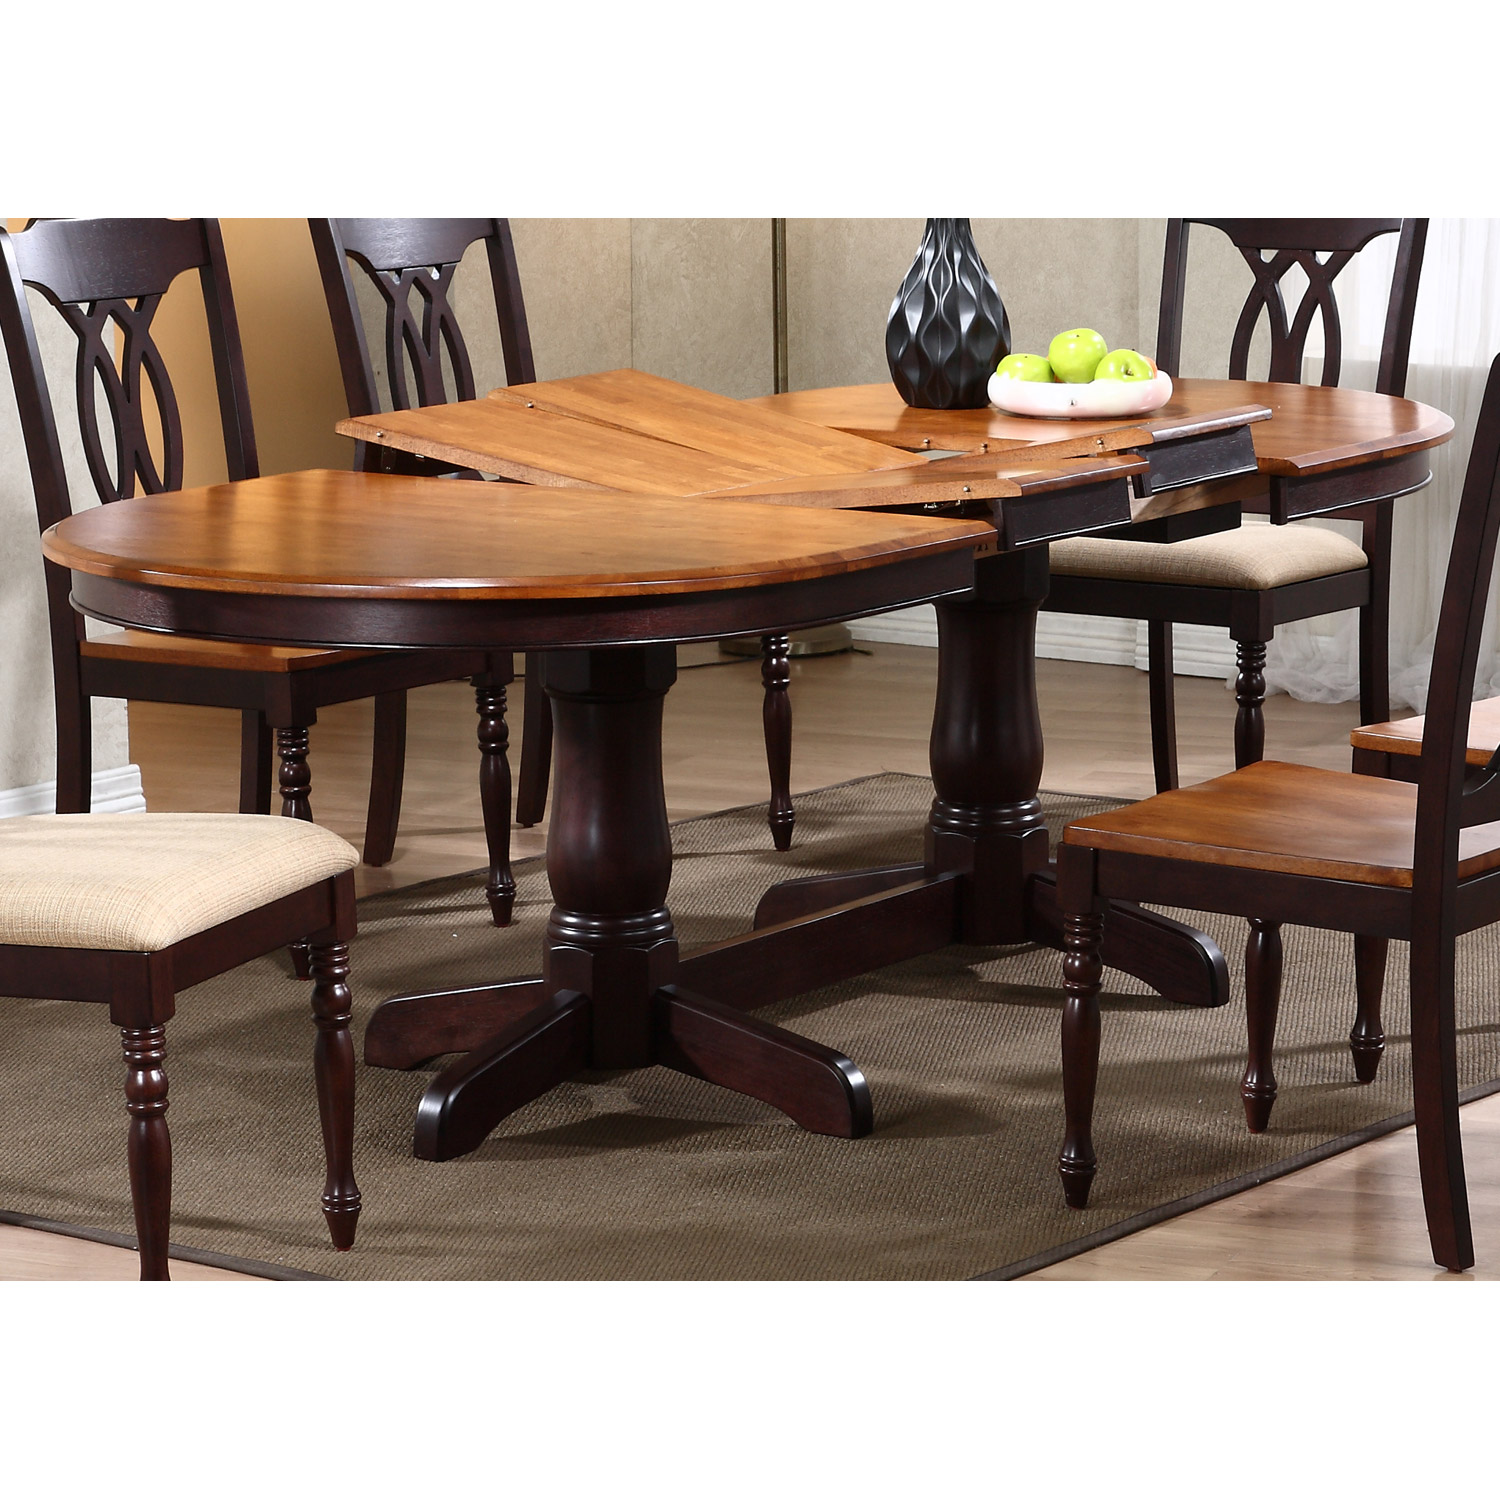 Gatsby Oval Dining Table - Double Butterfly Leaf, Whiskey & Mocha - ICON-OV90-DT-WY-MA